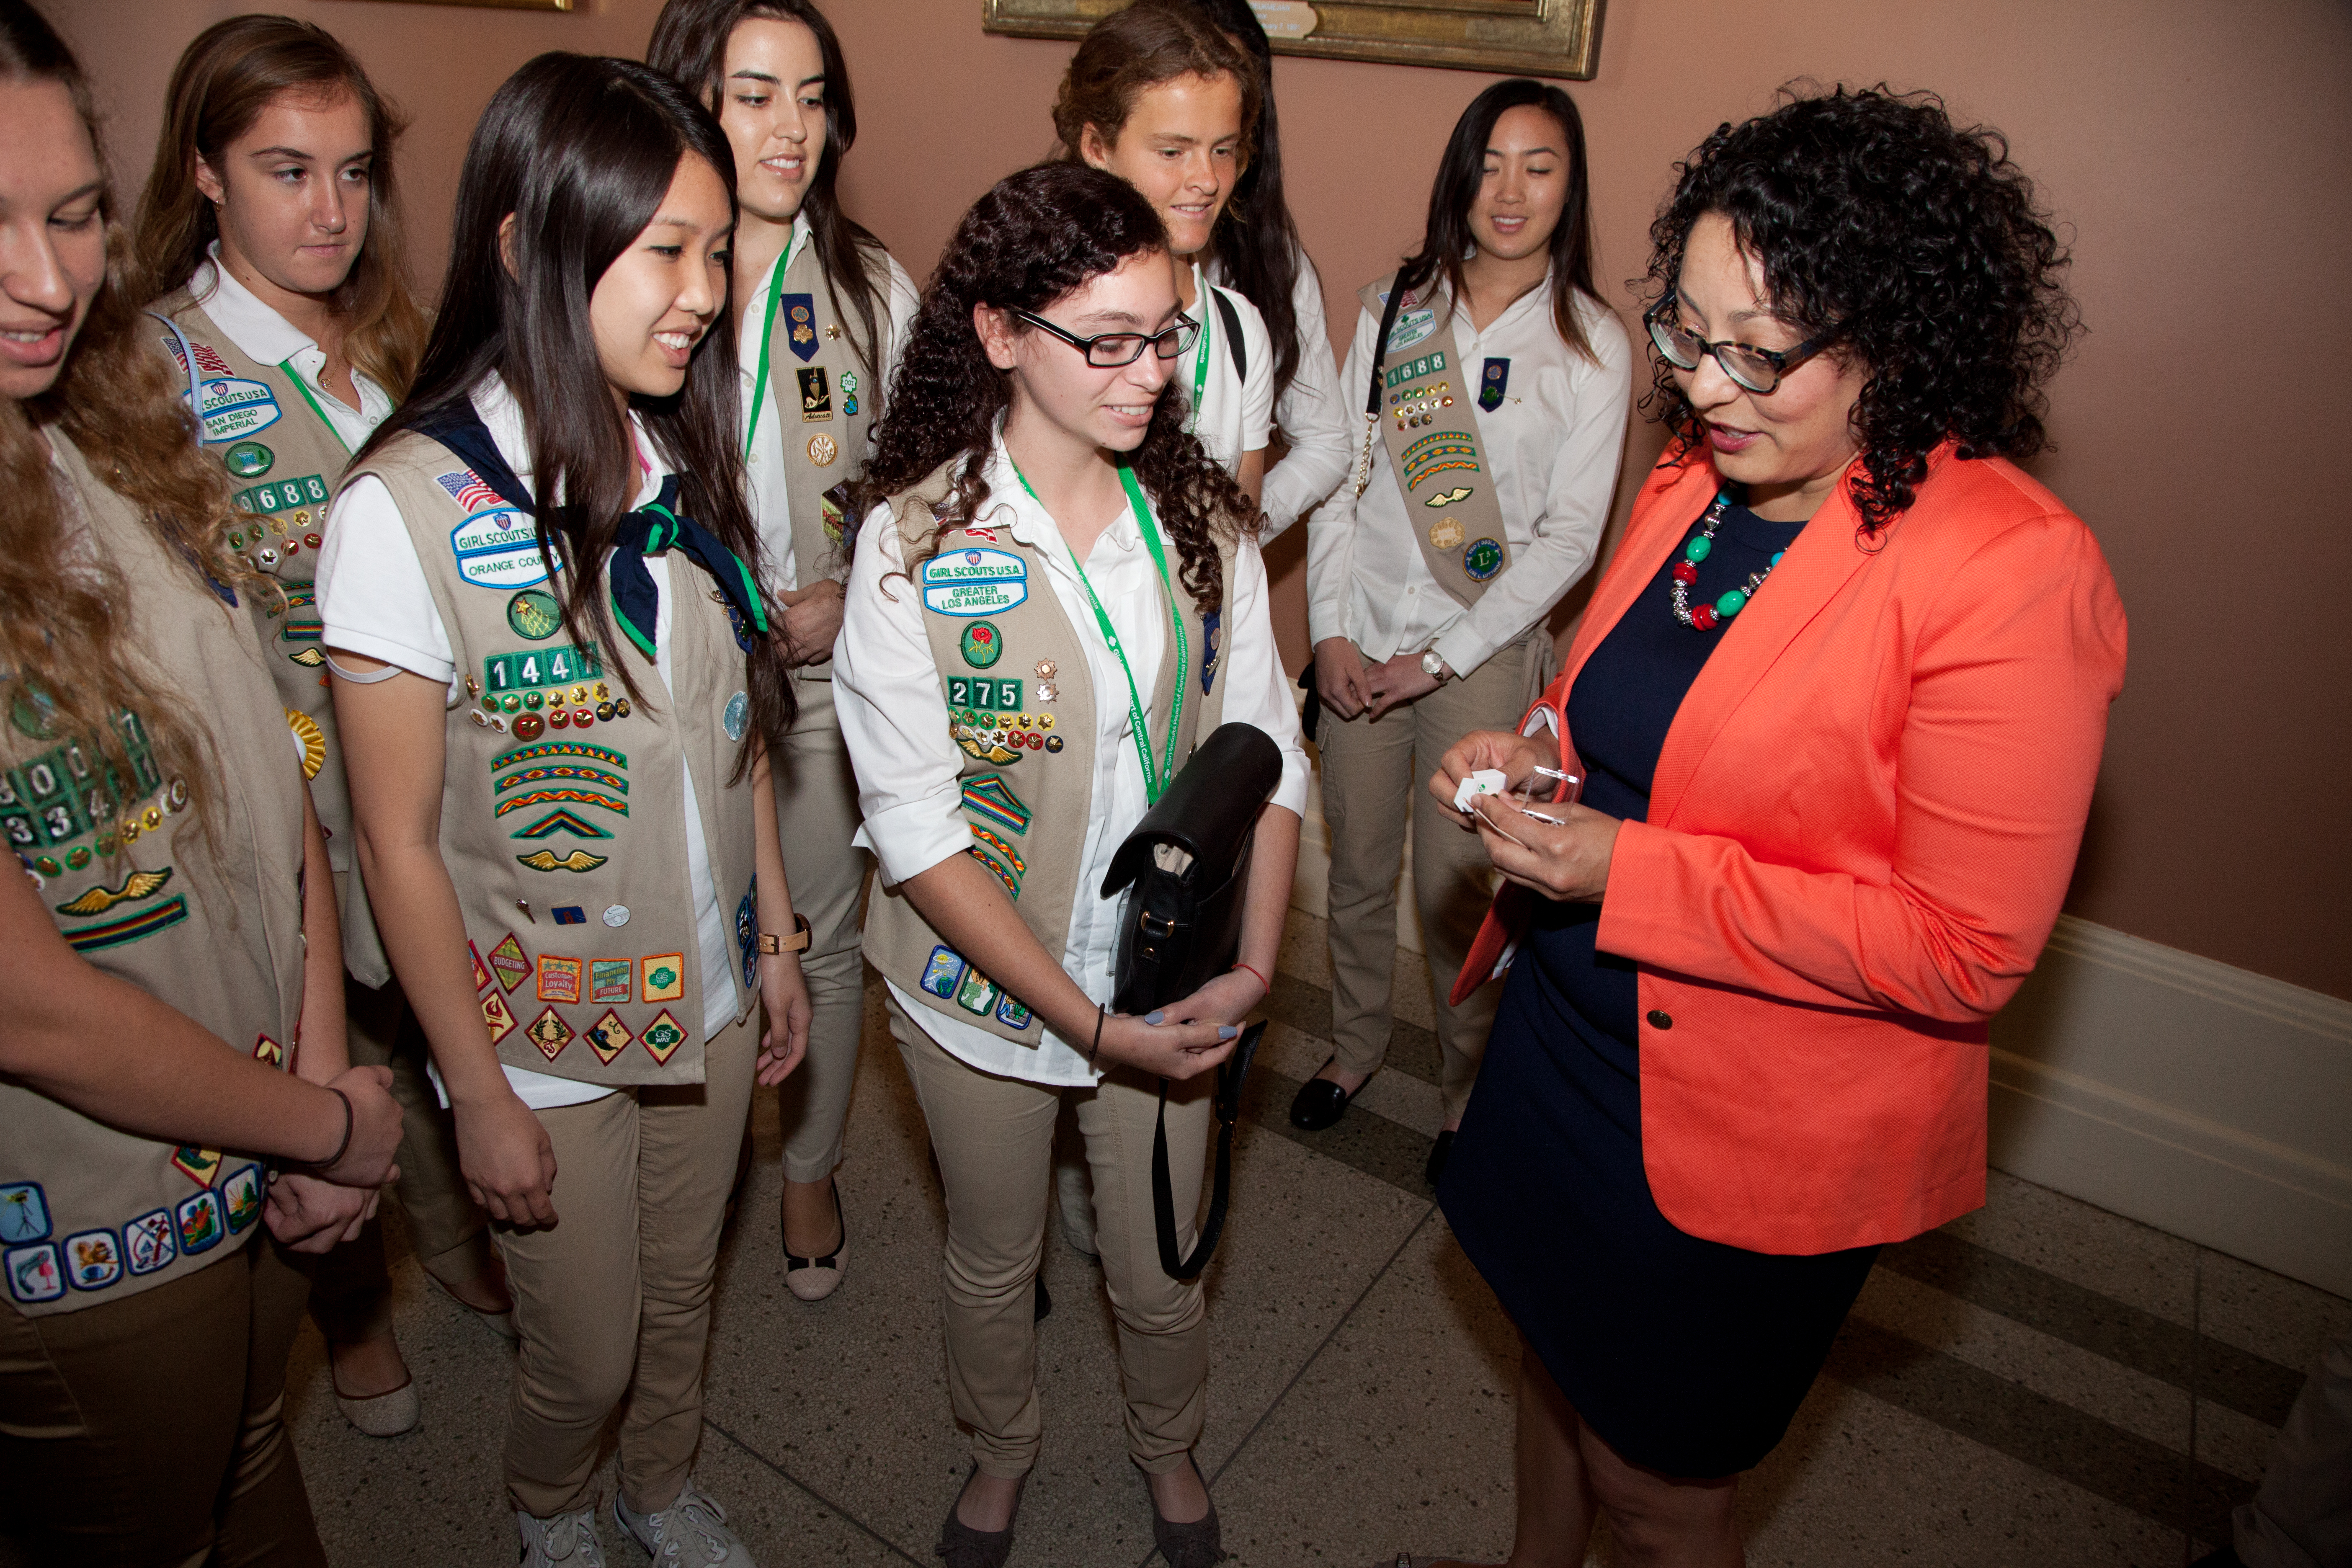 California Legislators Sign Proclamation In Sacramento, California Recognizing 100 Years Of The Gold Award, The Highest Rank In Girl Scouting